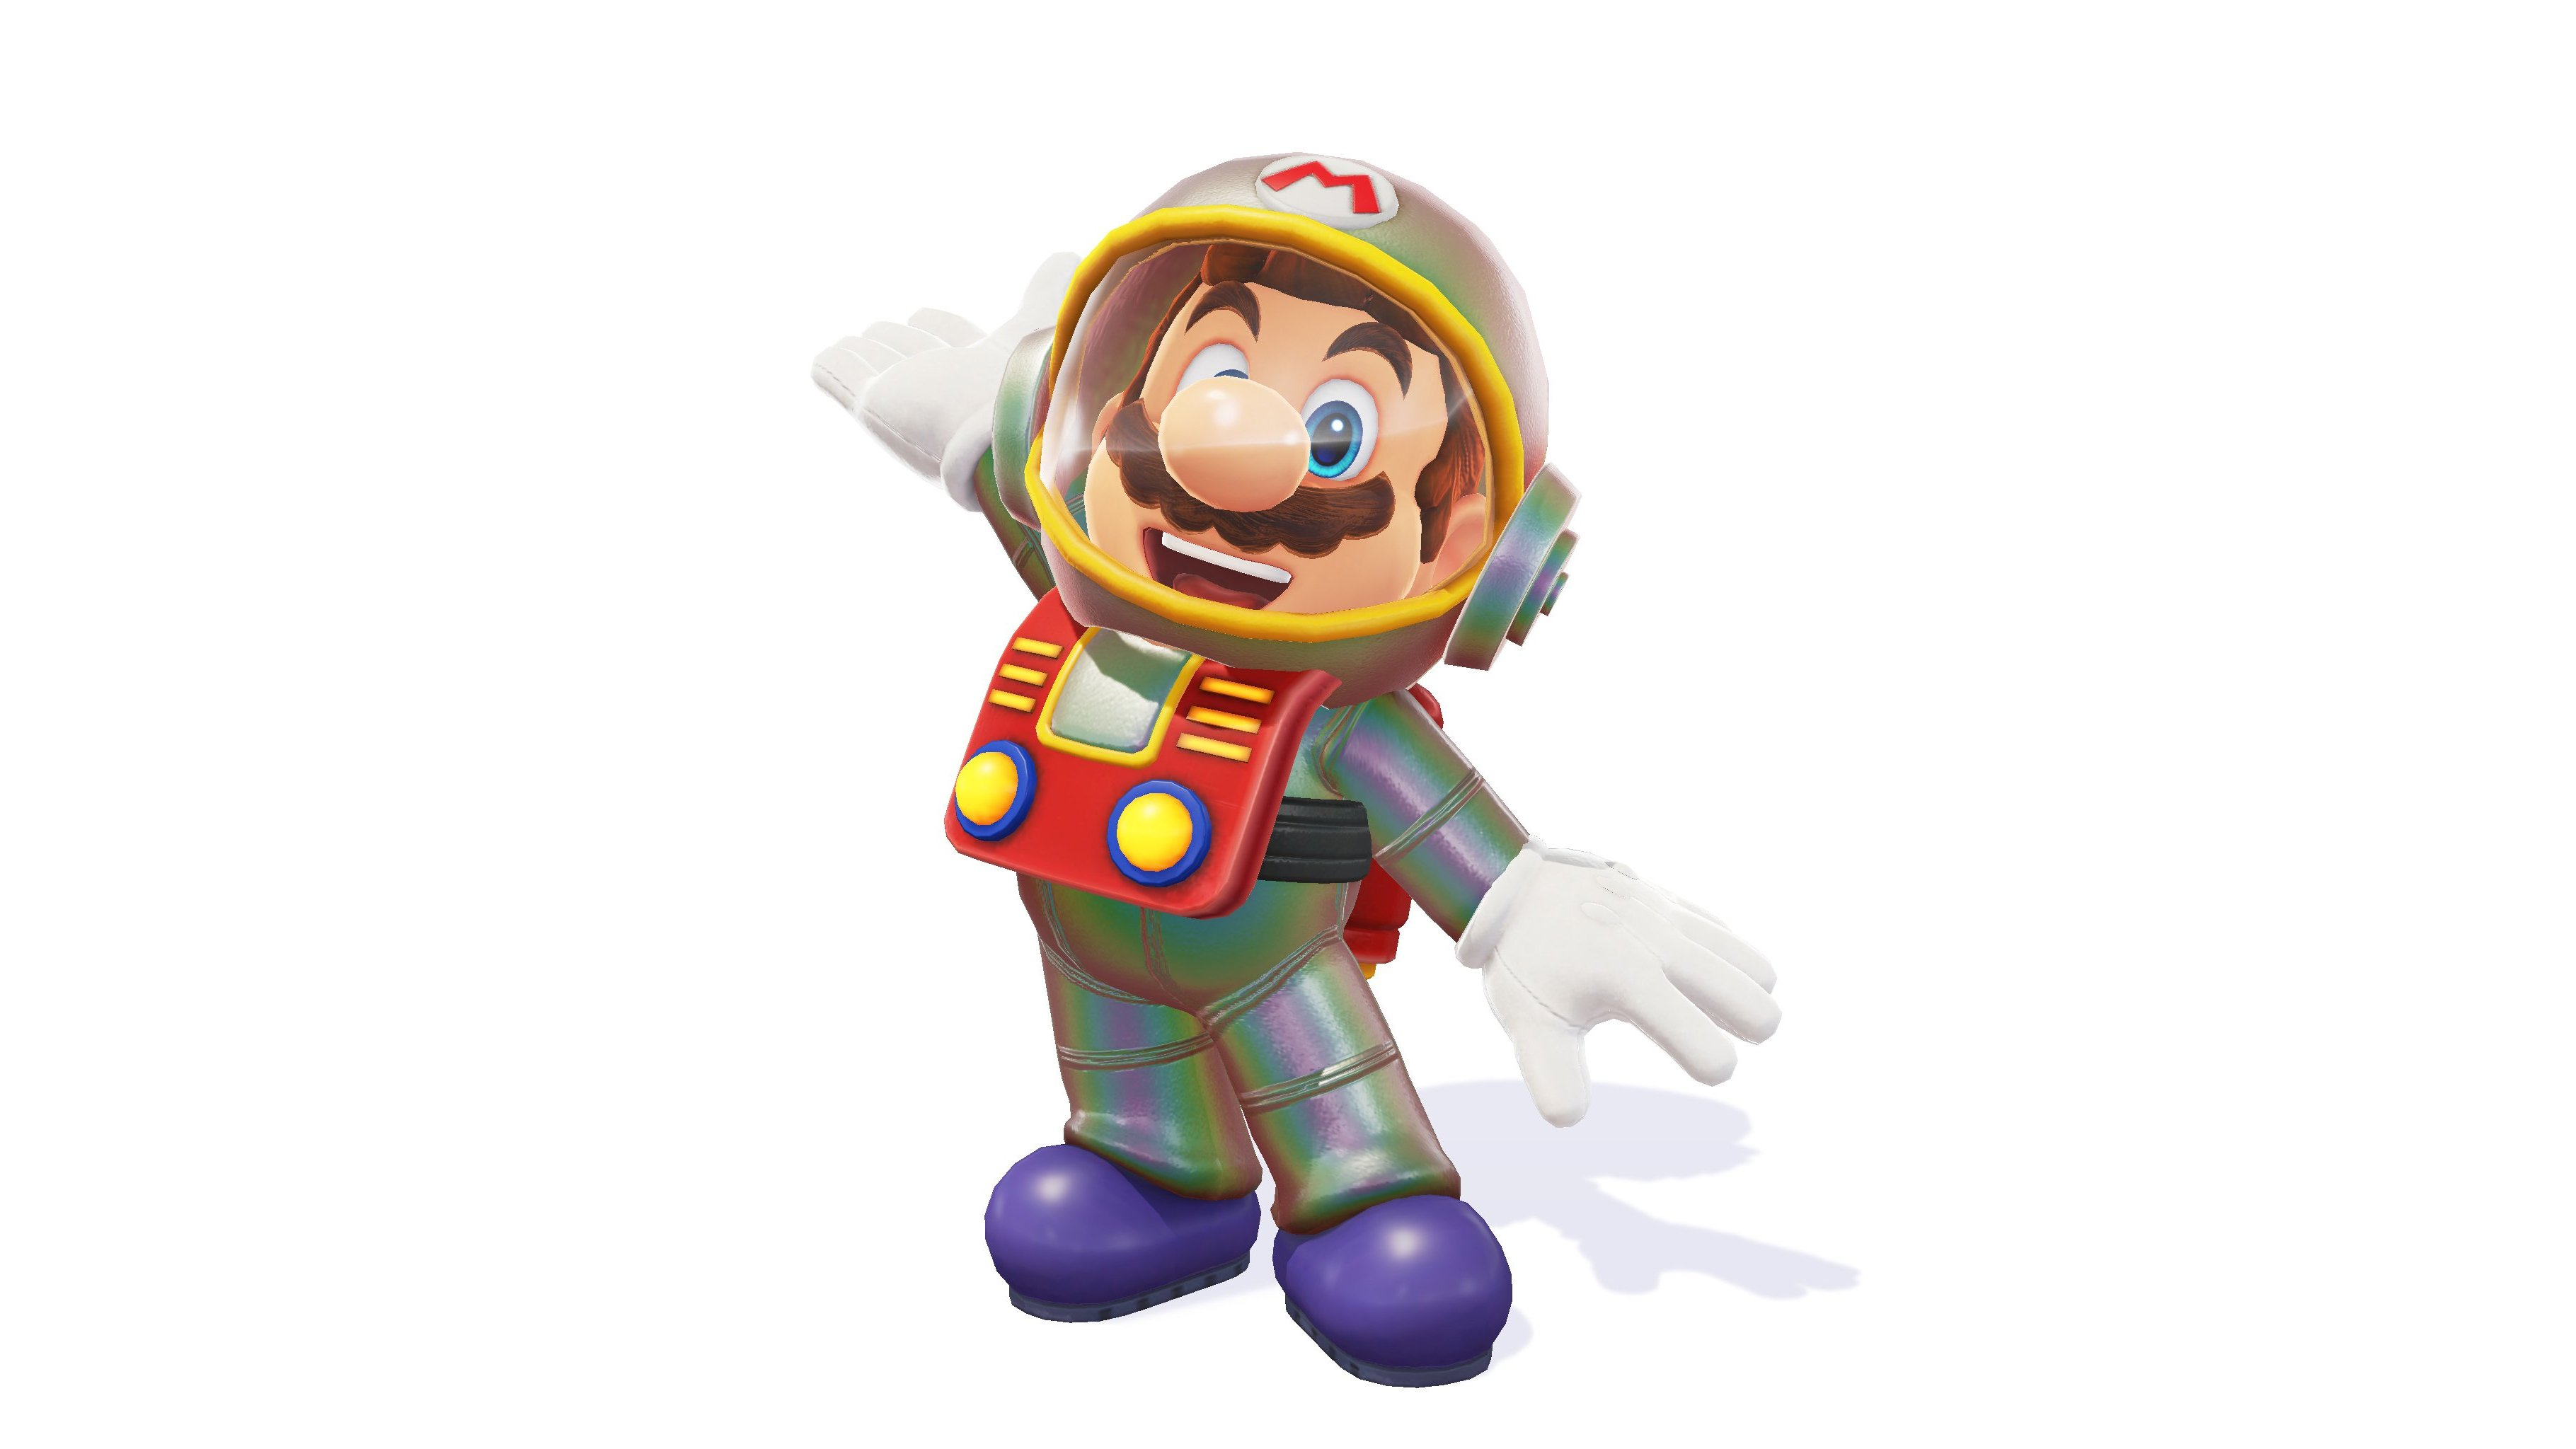 New spacesuit and baseball outfit in Mario Odyssey shop ...